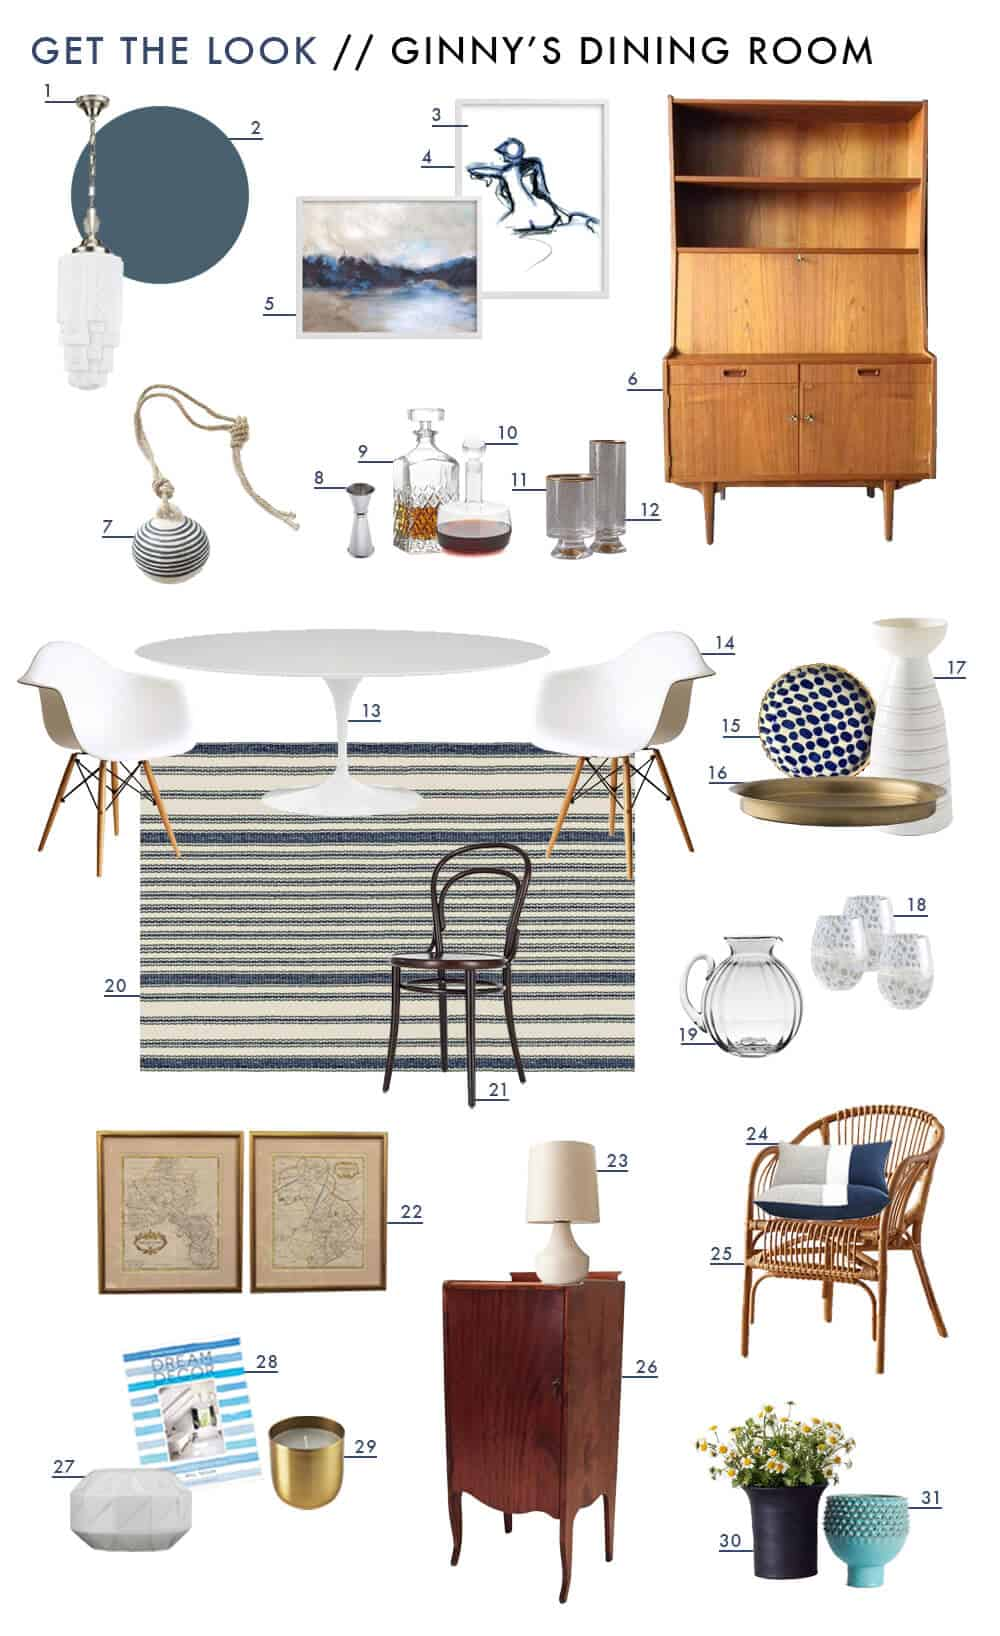 ginnys-dining-room-get-the-look-emily-henderson-design